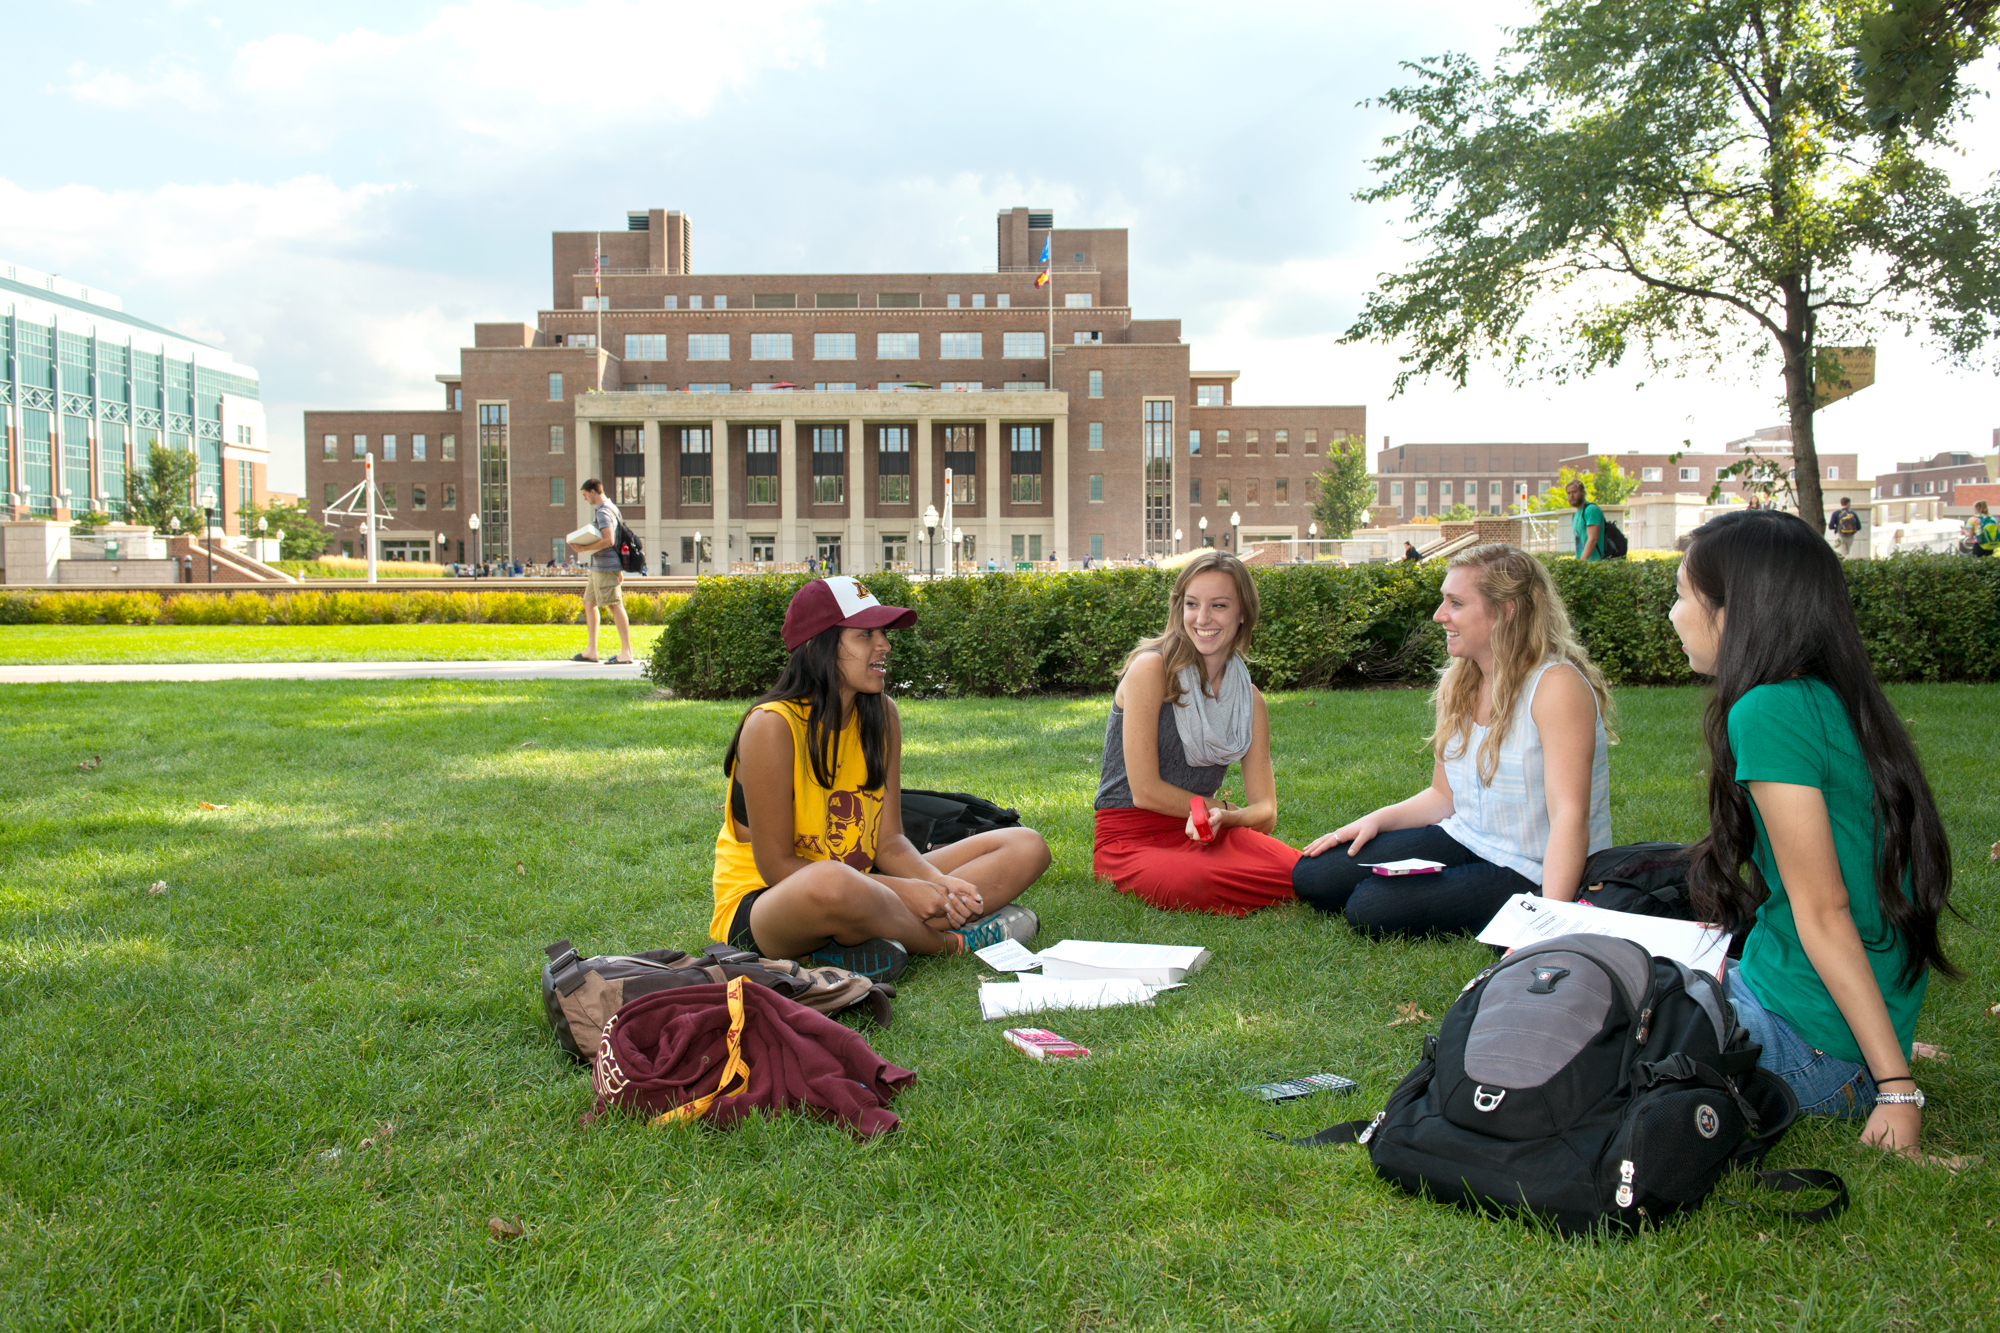 Students studying on the grass on campus